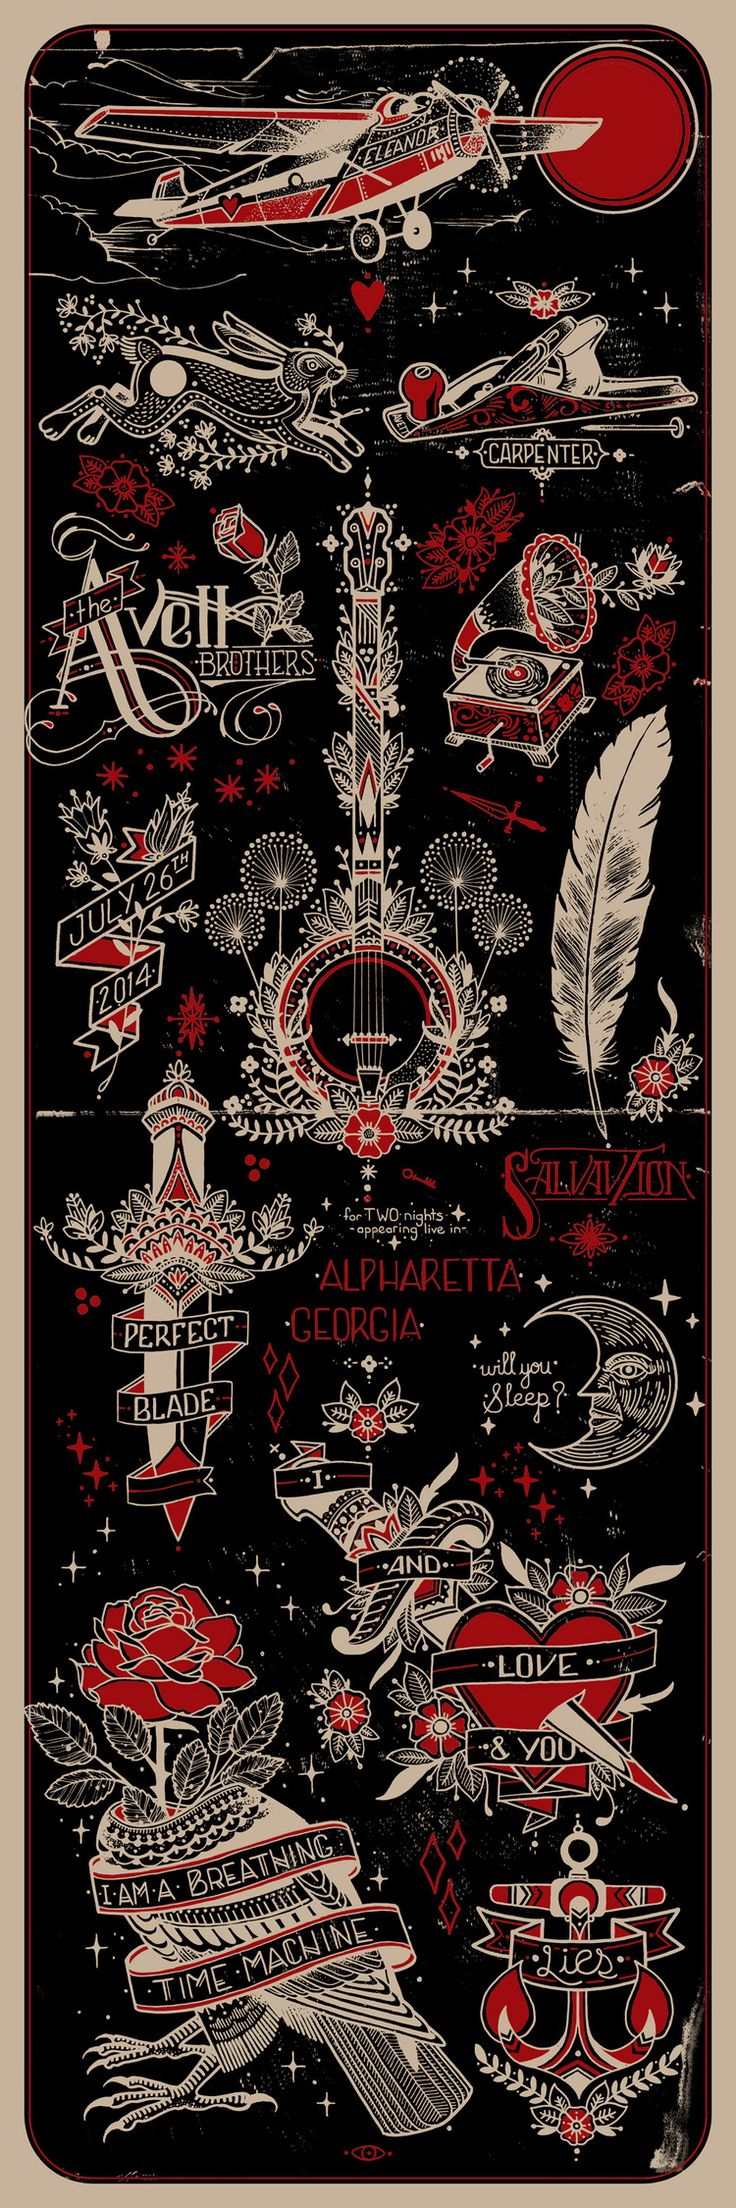 Avett Brothers - David Hale - 2014 ----